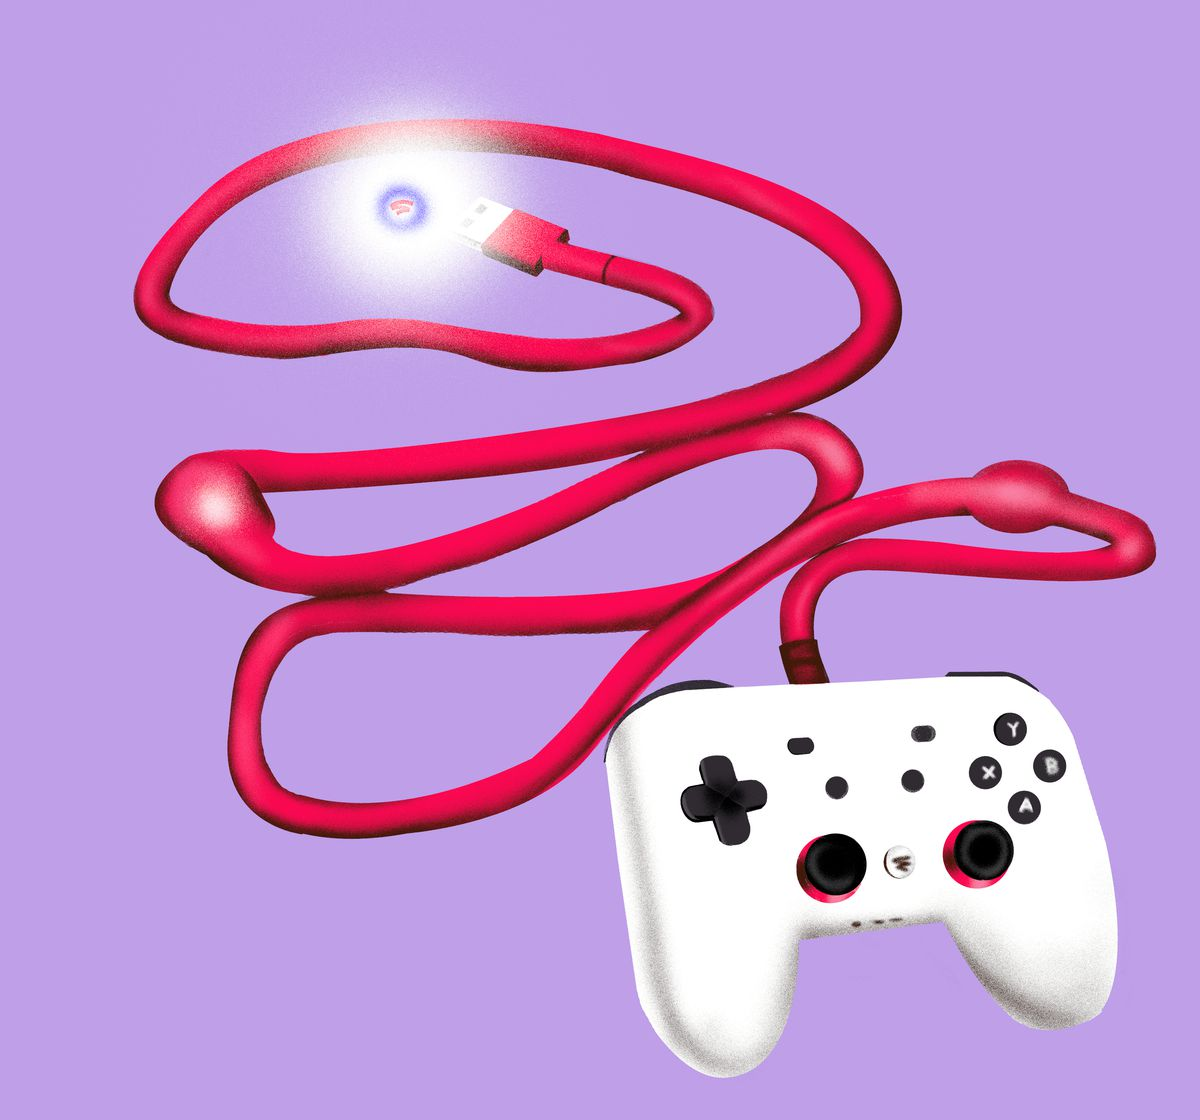 The Google Stadia controller, illustrated as having blockages in a connecting cable